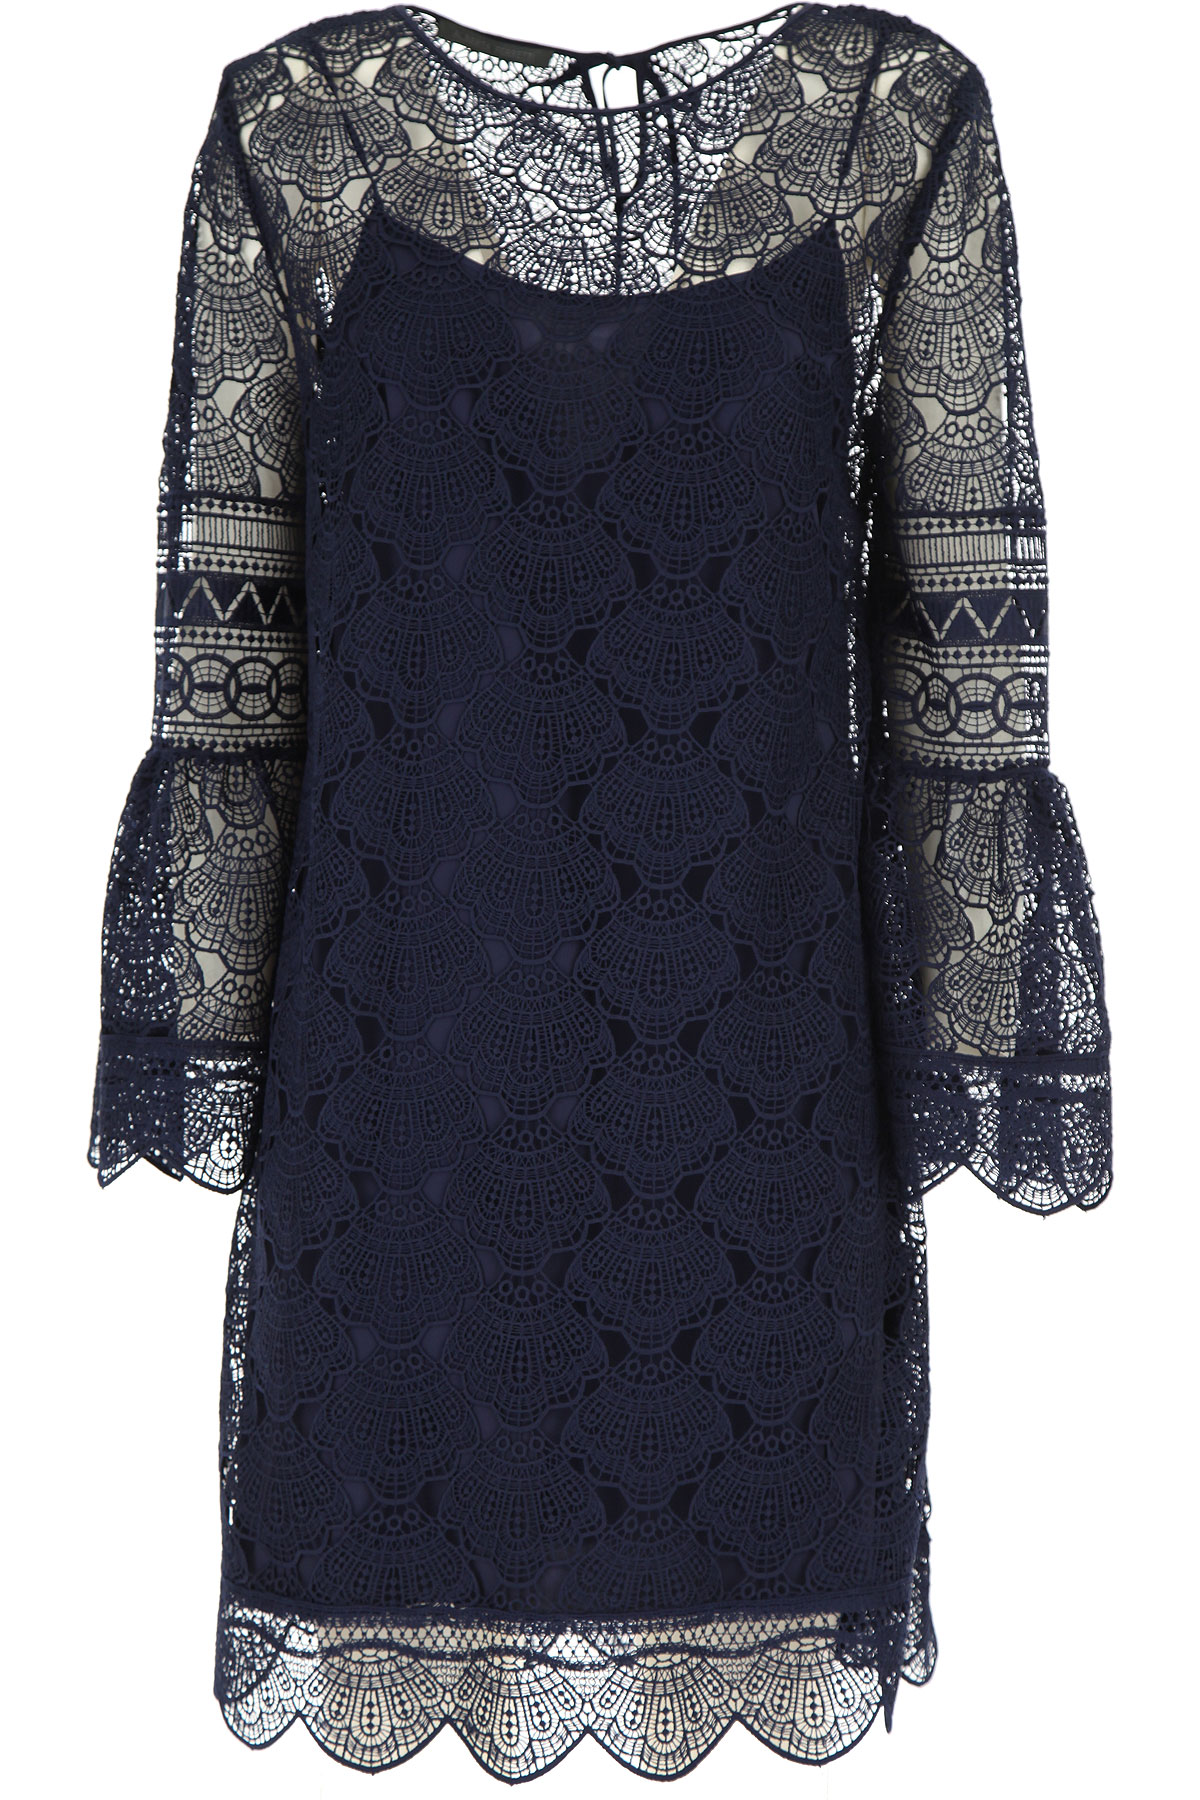 Alberta Ferretti Dress for Women, Evening Cocktail Party On Sale, Midnight Blue, polyestere, 2019, 10 12 6 8